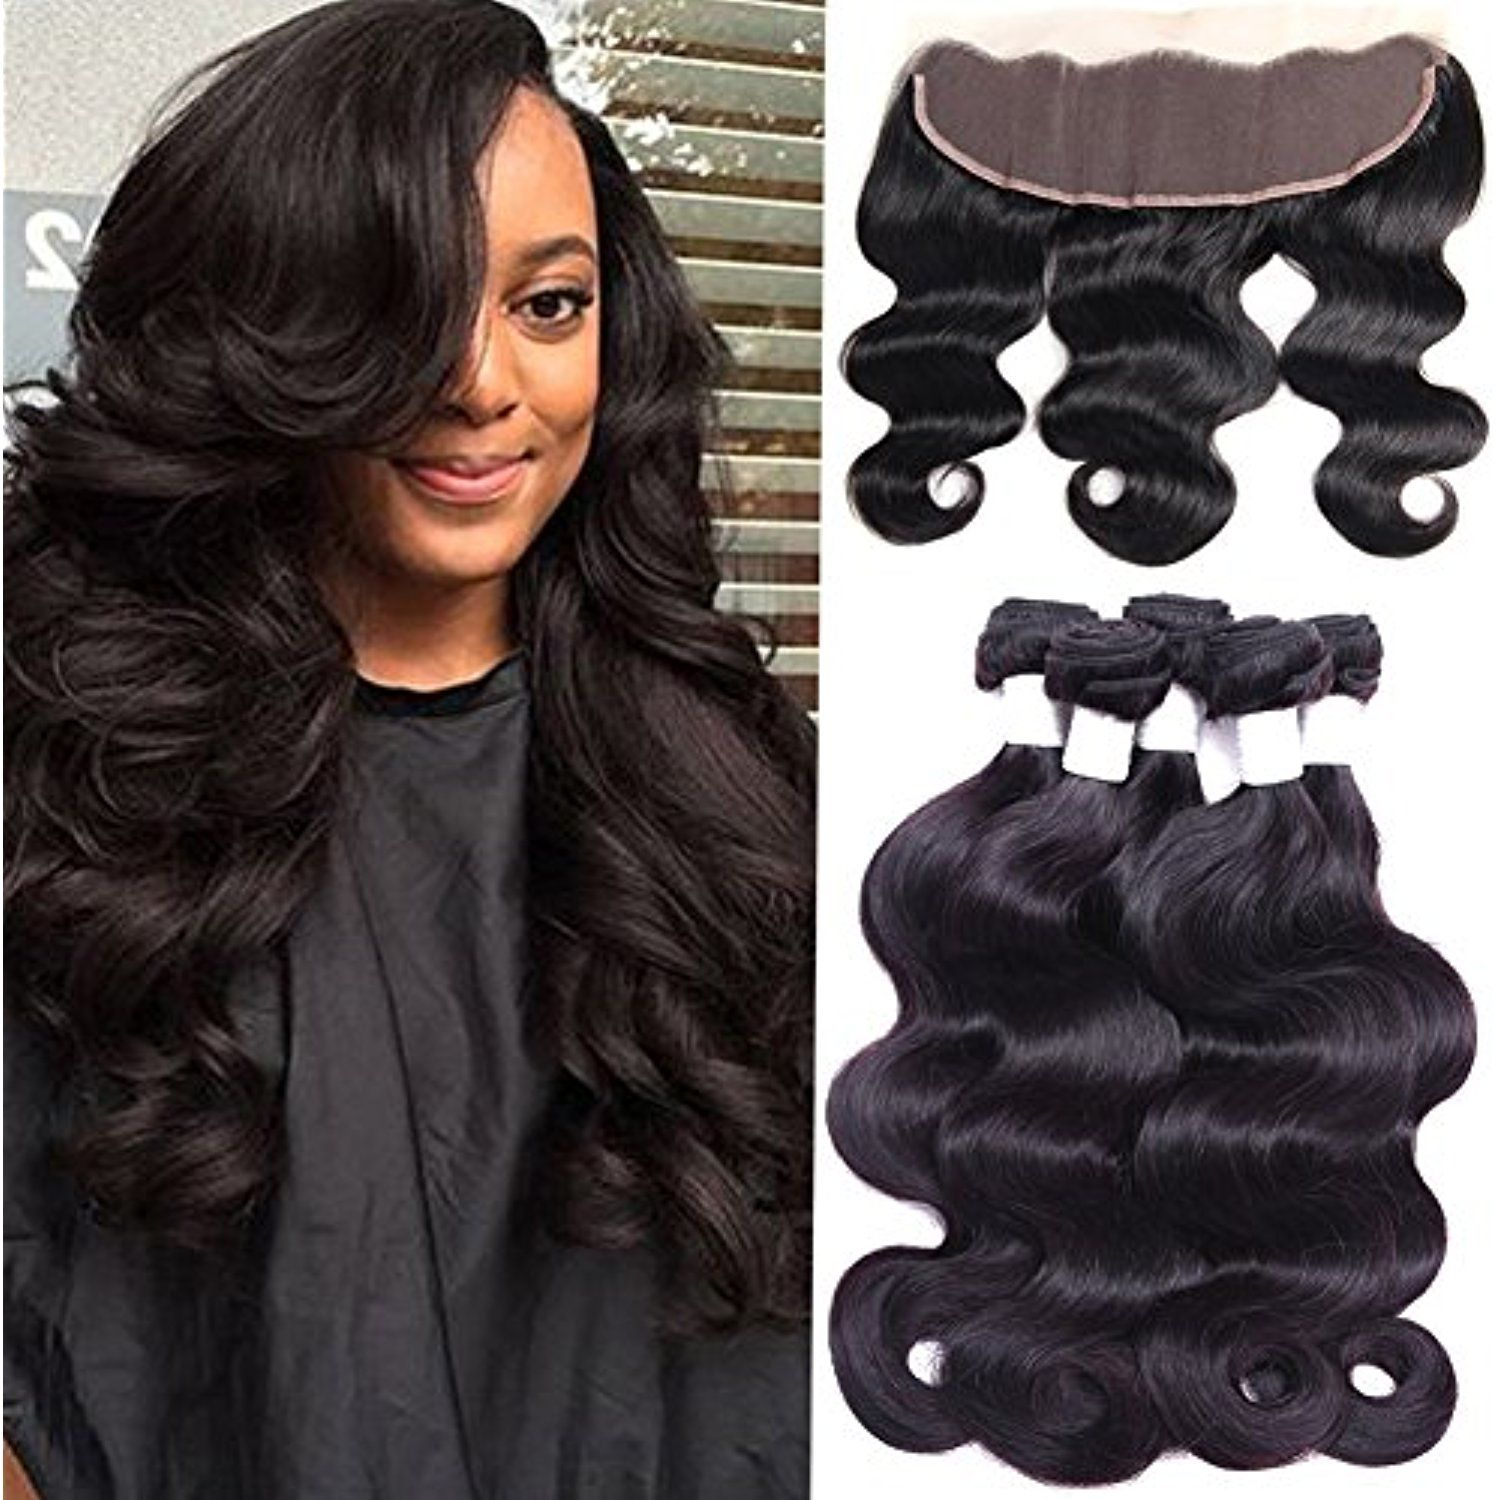 Flady Hair Brazilian Body Wave 3 Bundles With Lace Frontal Closure Ear To Ear Unprocessed 7a Brazilian Virgin Human H Brazilian Body Wave Human Hair Scene Hair